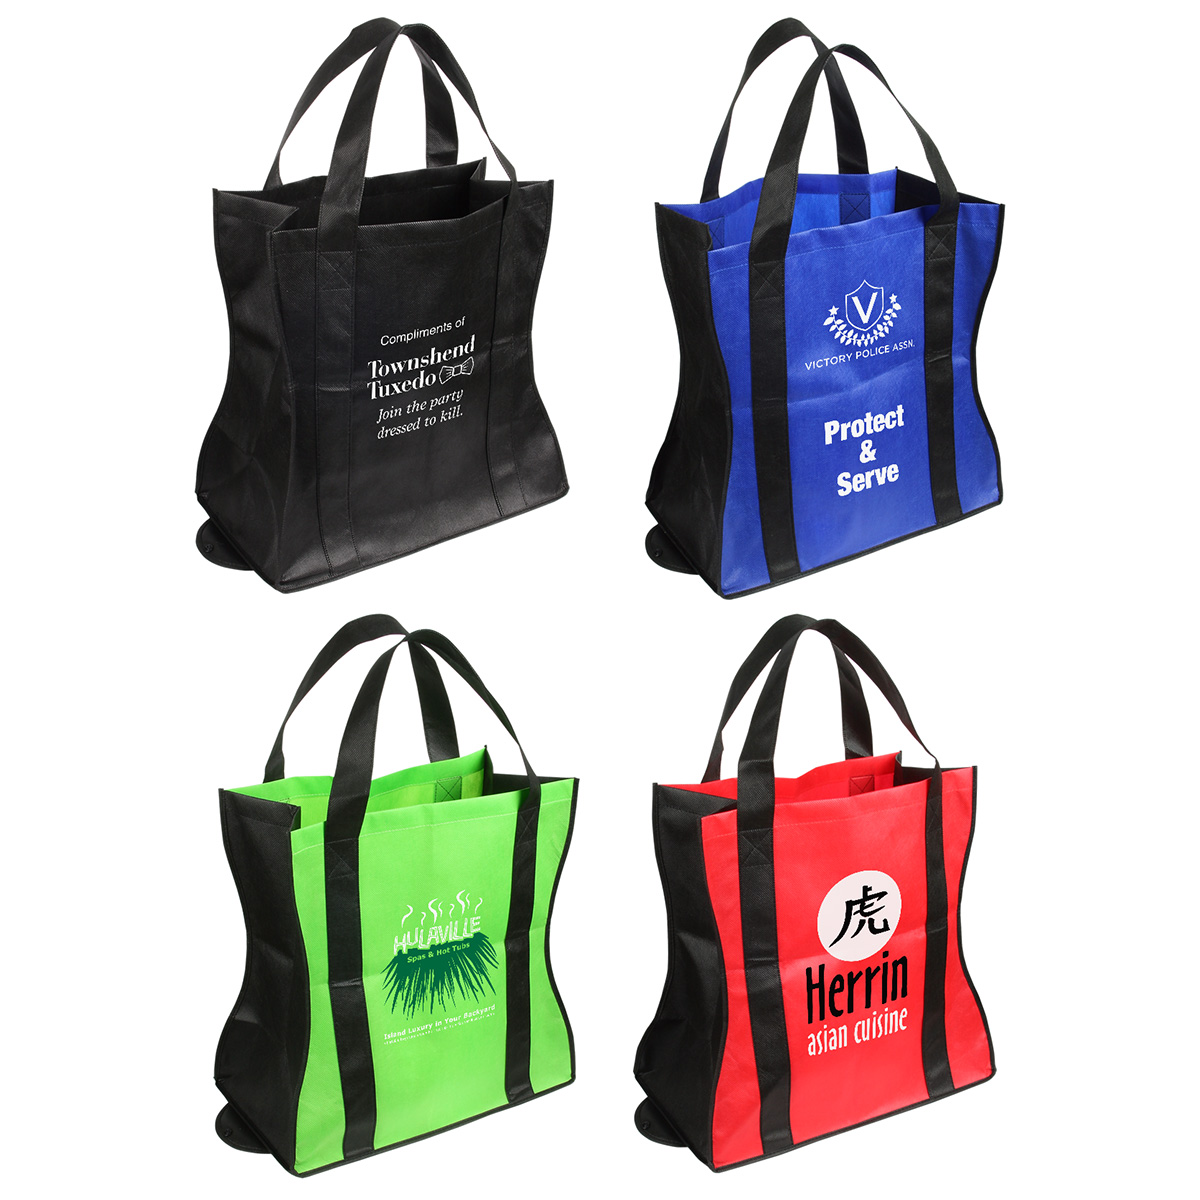 Wave Rider Folding Tote Bag, WBA-WR10 - 1 Colour Imprint